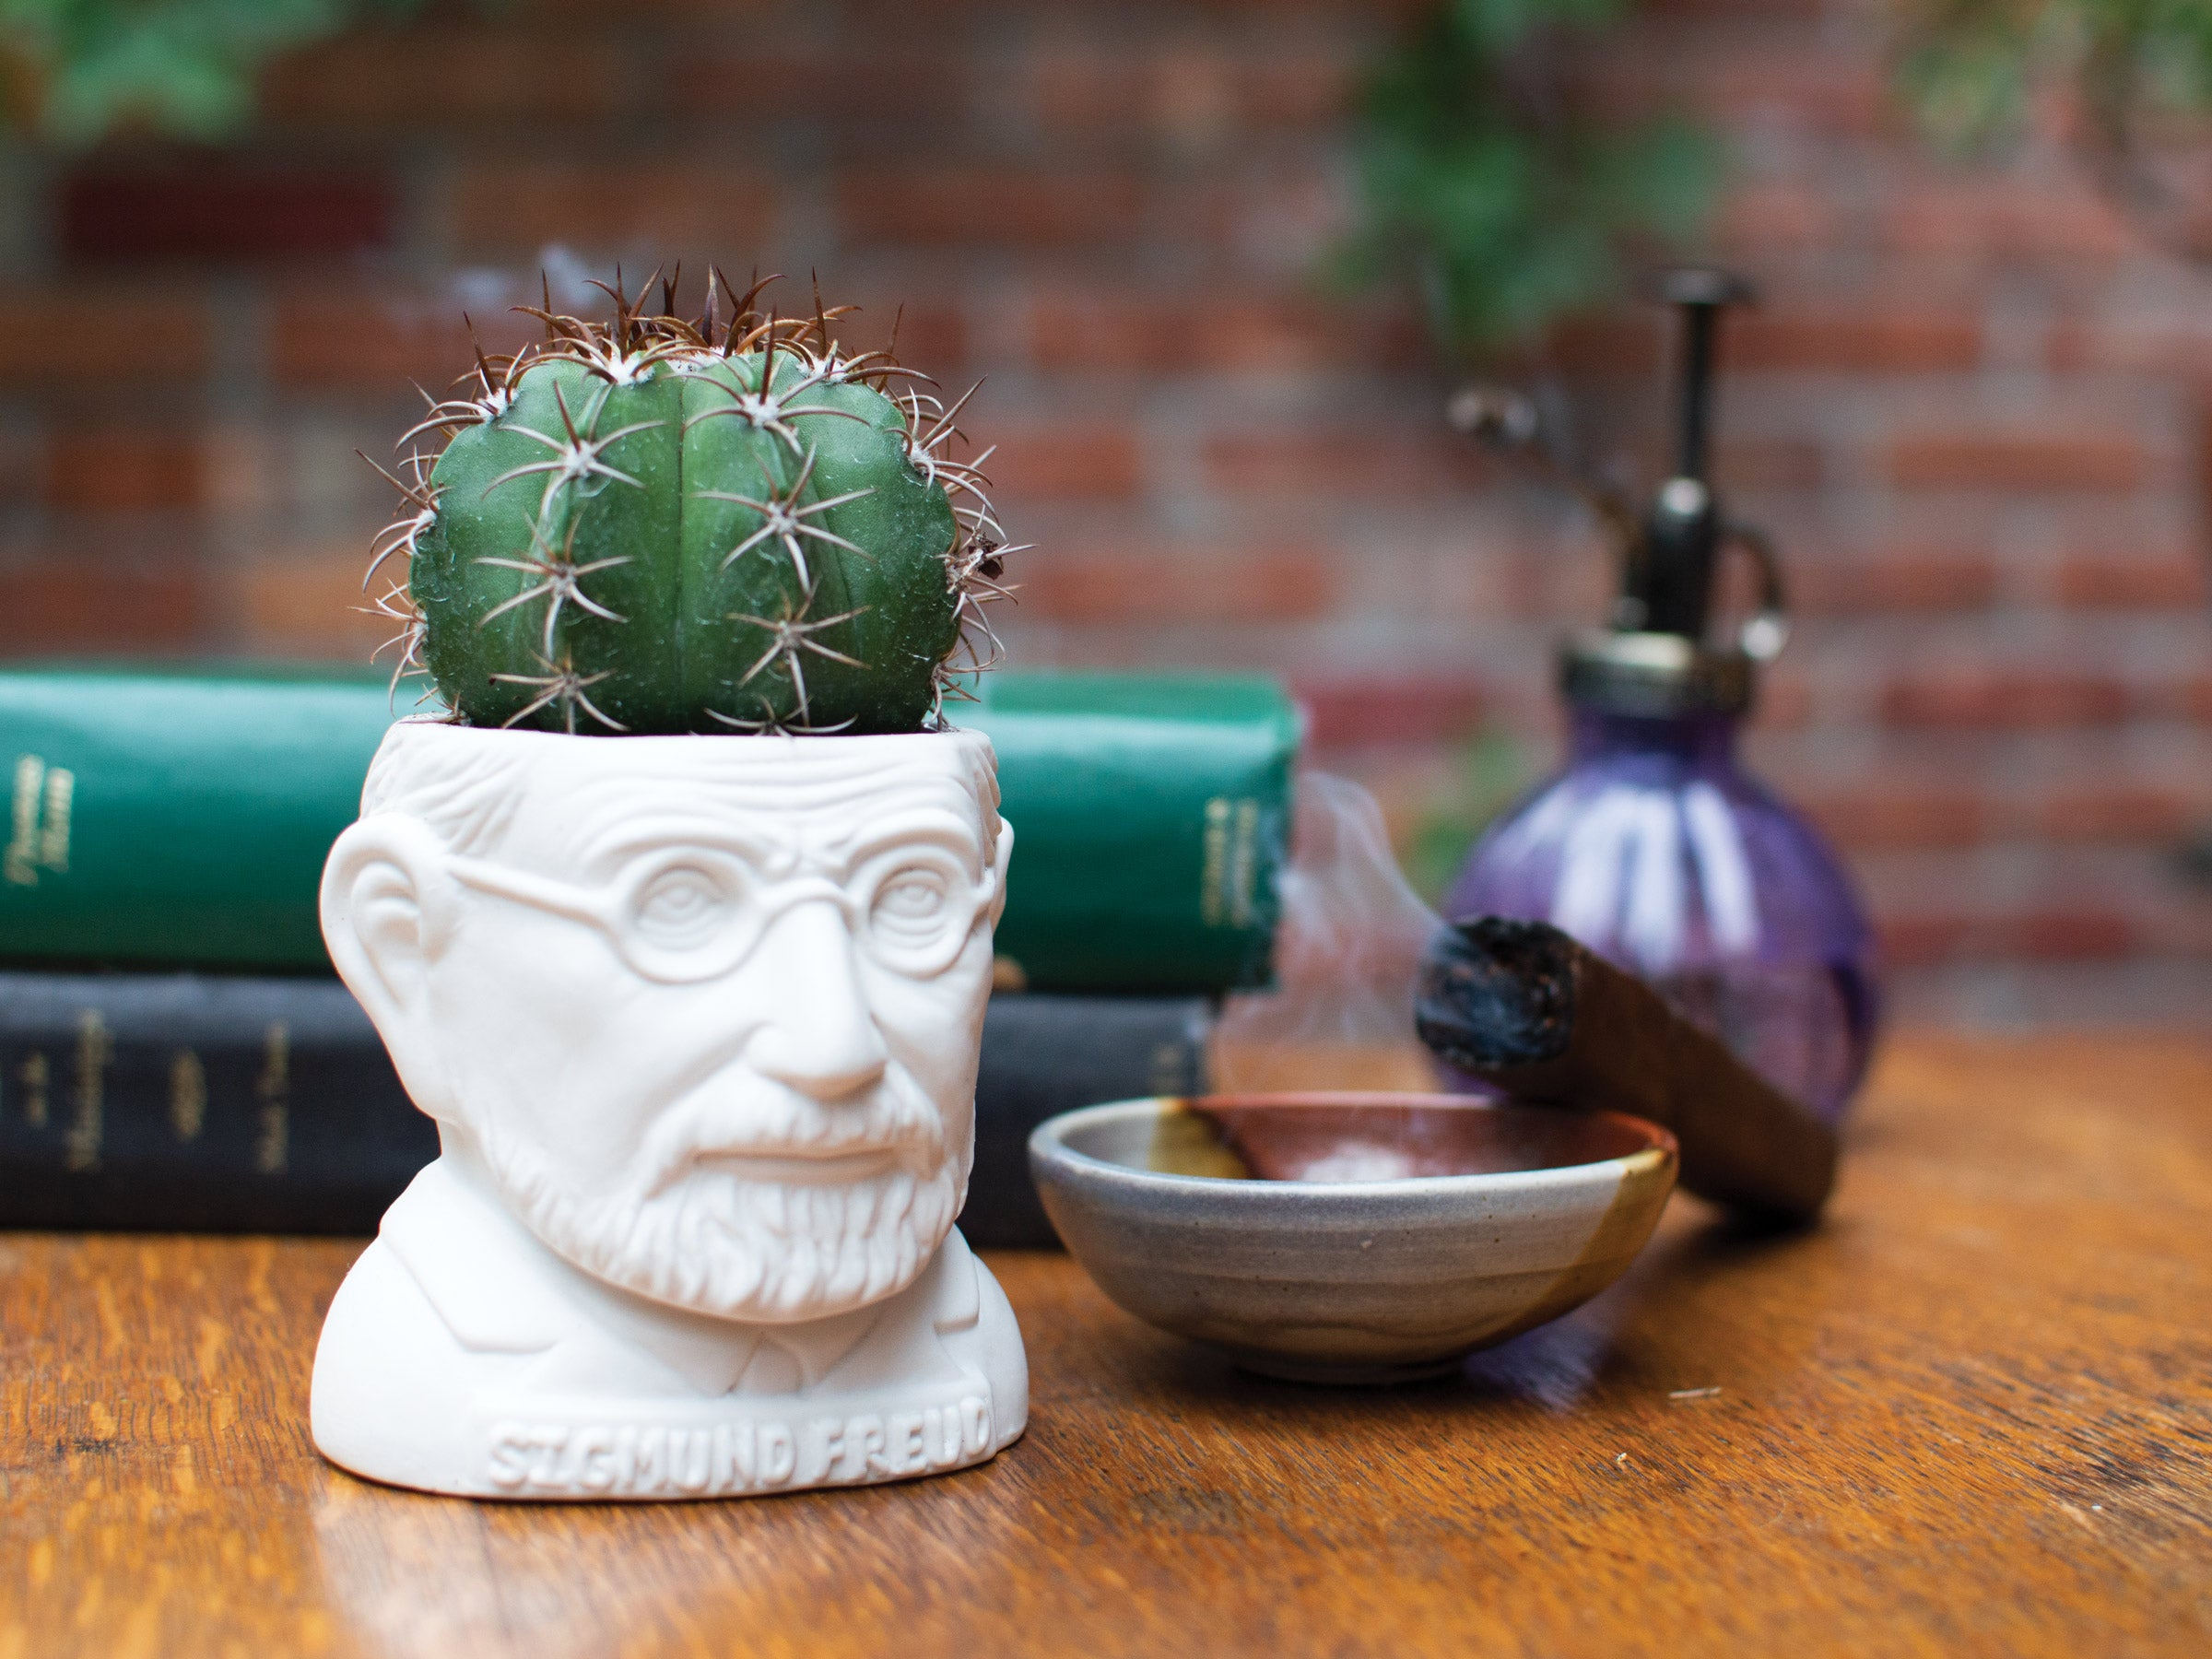 Sigmund Freud Planter